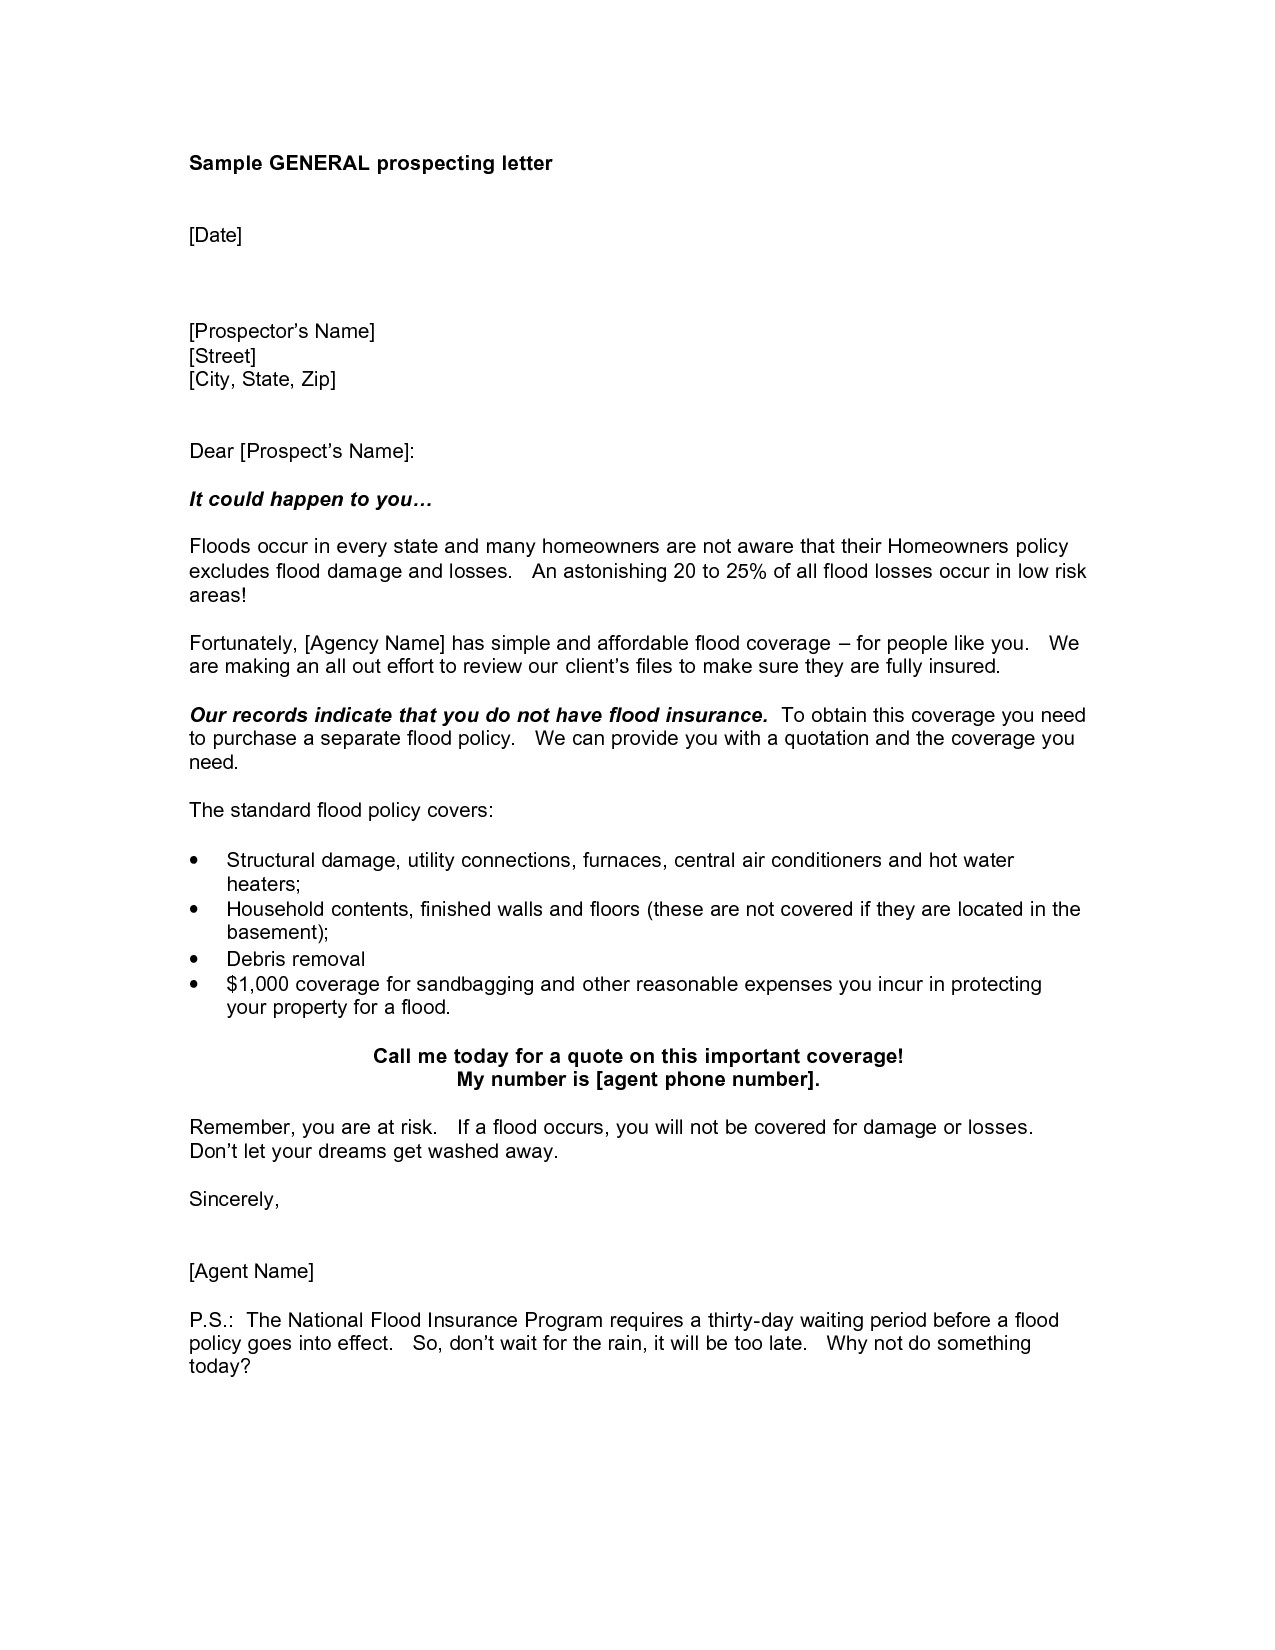 Commercial Real Estate Prospecting Letter Template - Letter format for Simple format Prospecting Letter Template